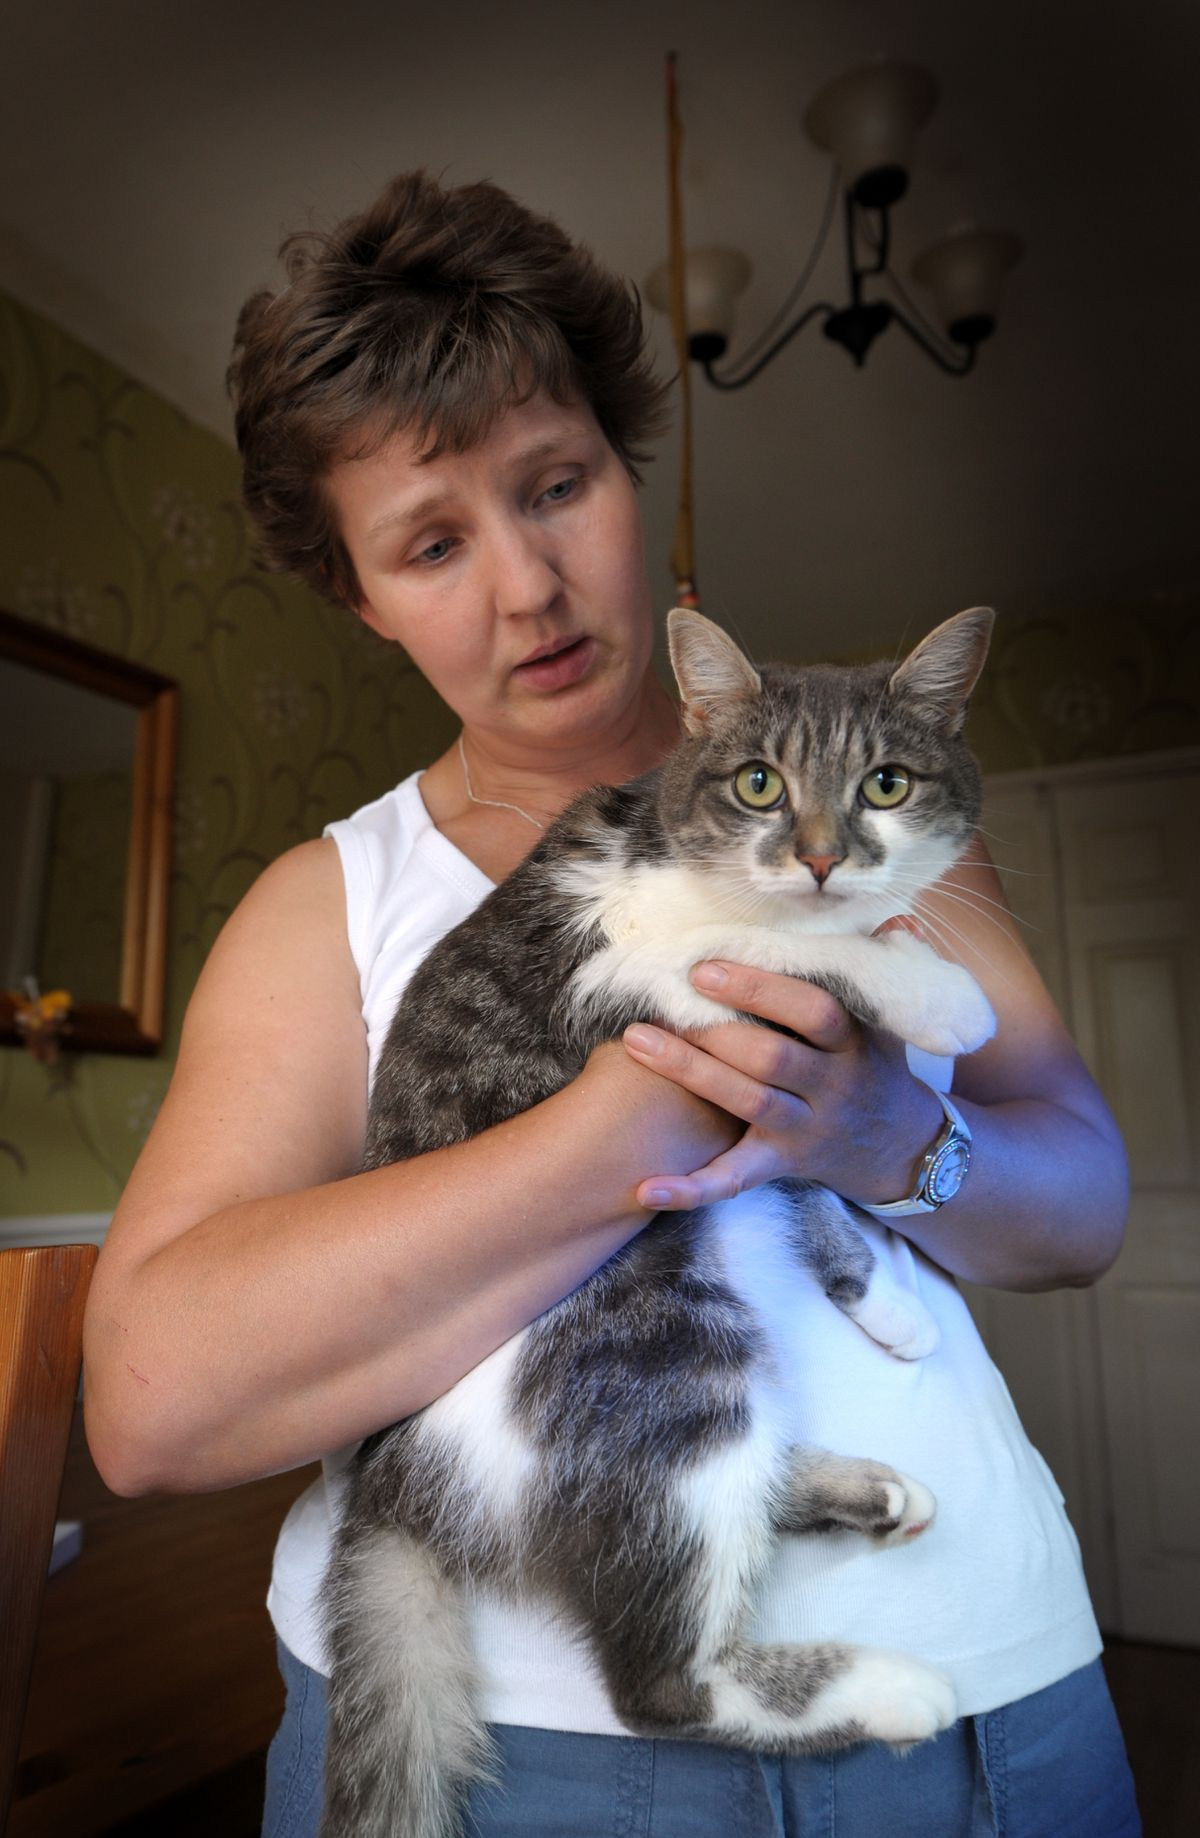 Sally Edwards from Ashmore Park, Wednesfield, pictured with her cat Smokey back in 2010